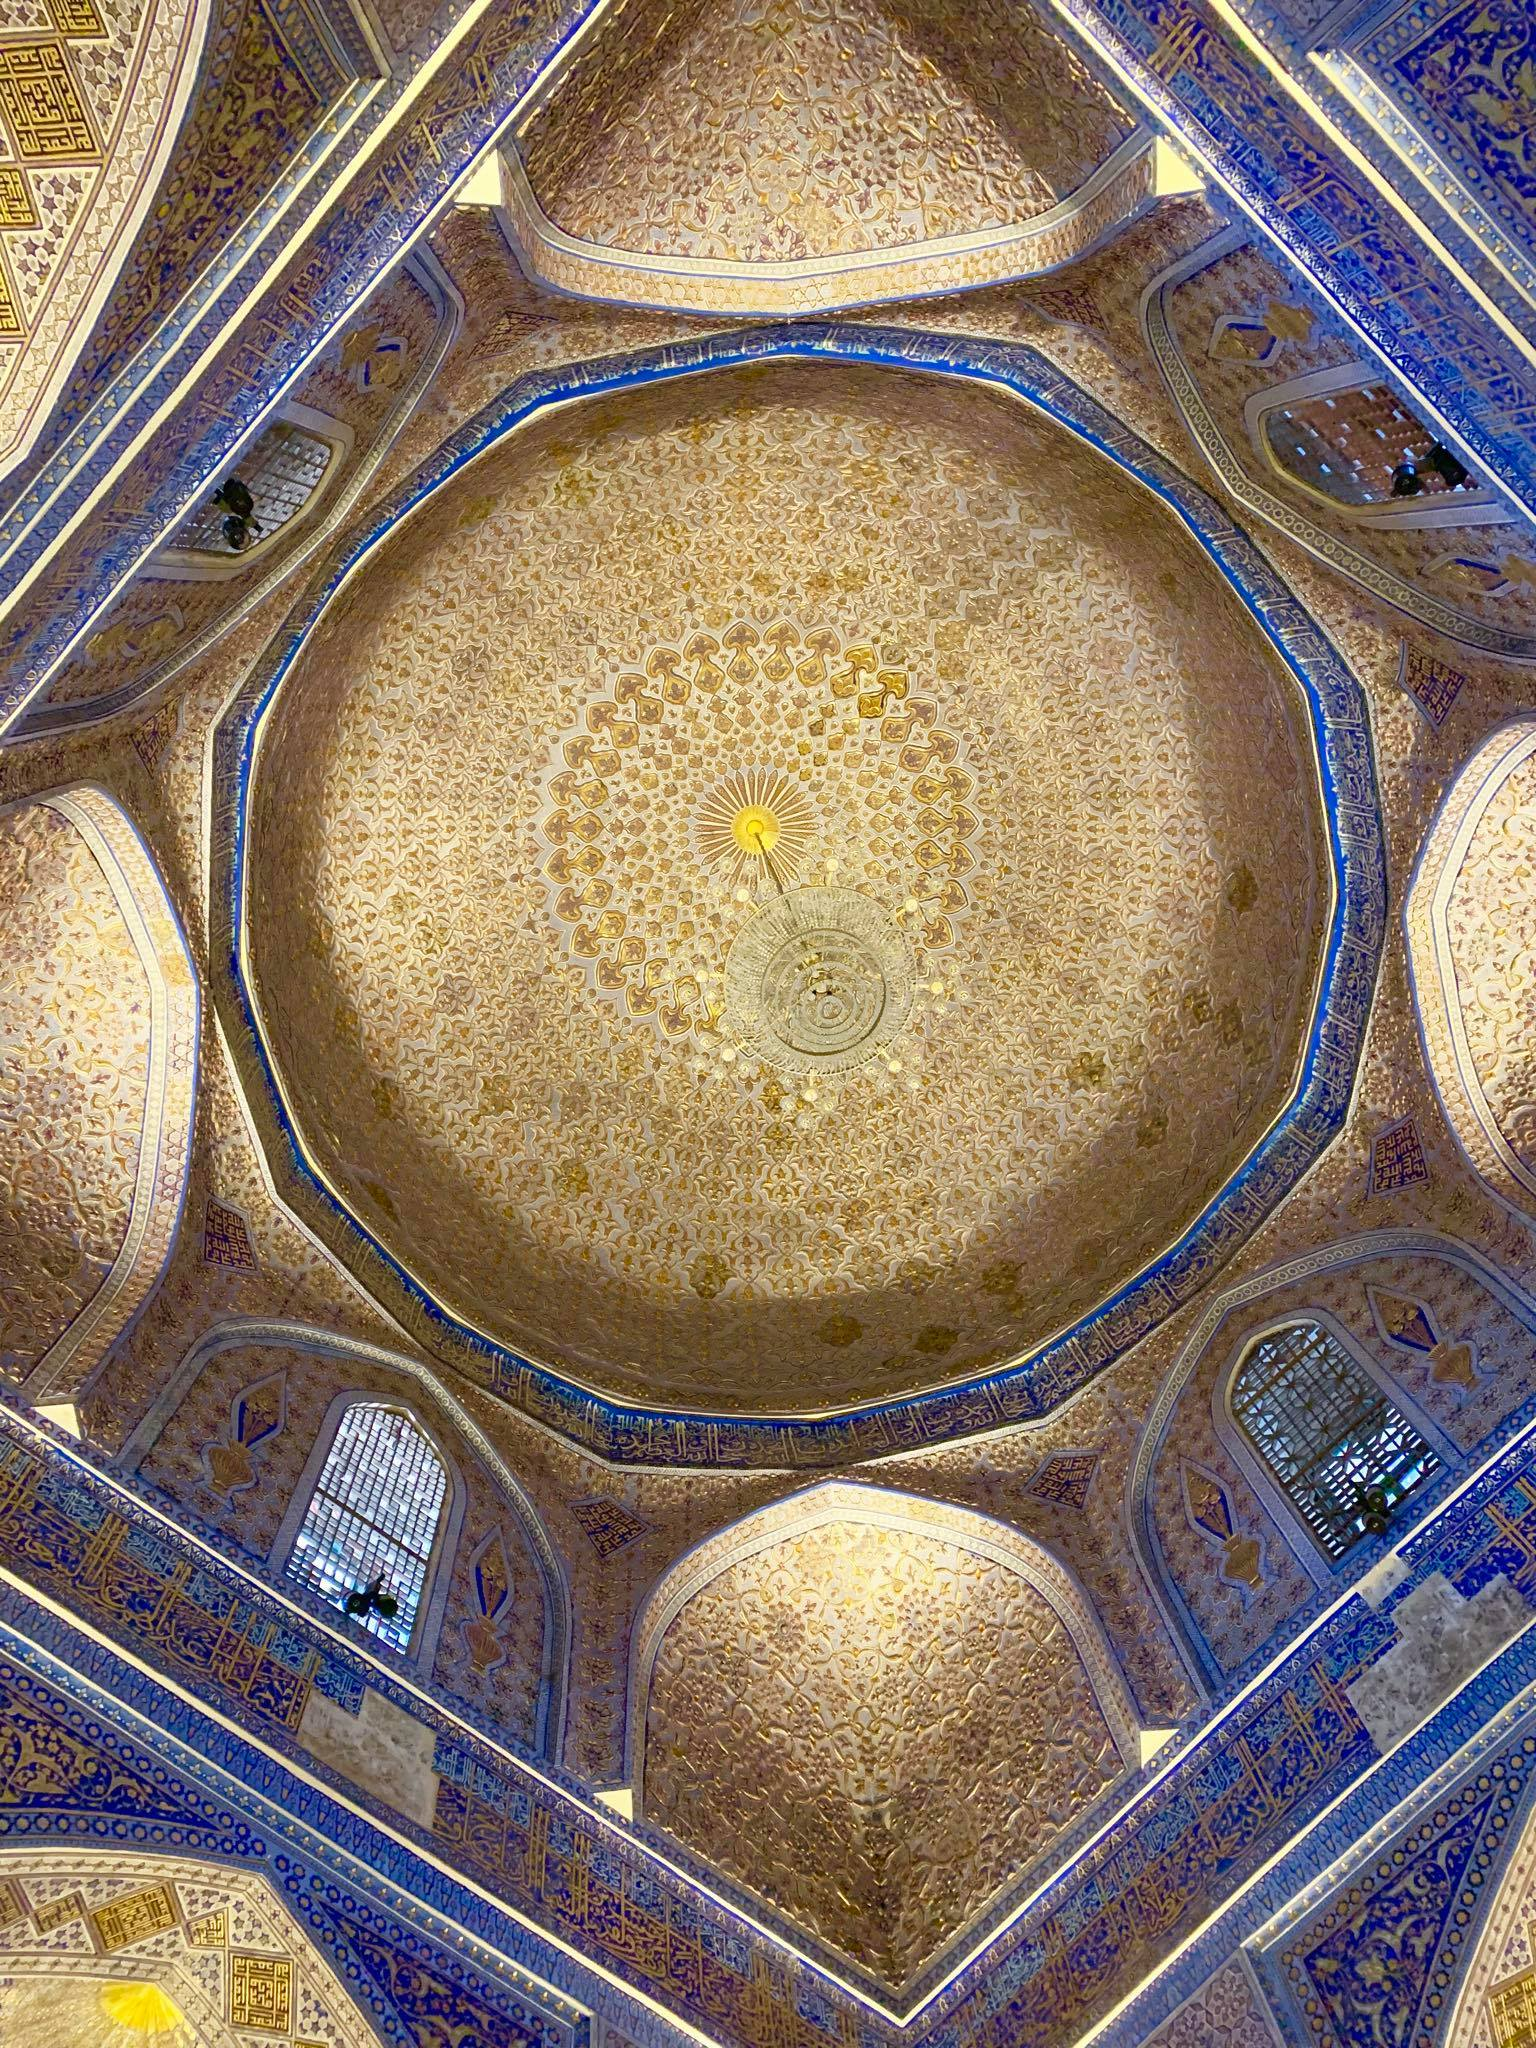 Kach Solo Travels in 2019 Hello from Samarqand  Samarkand in the southeastern part of Uzbekistan19.jpg